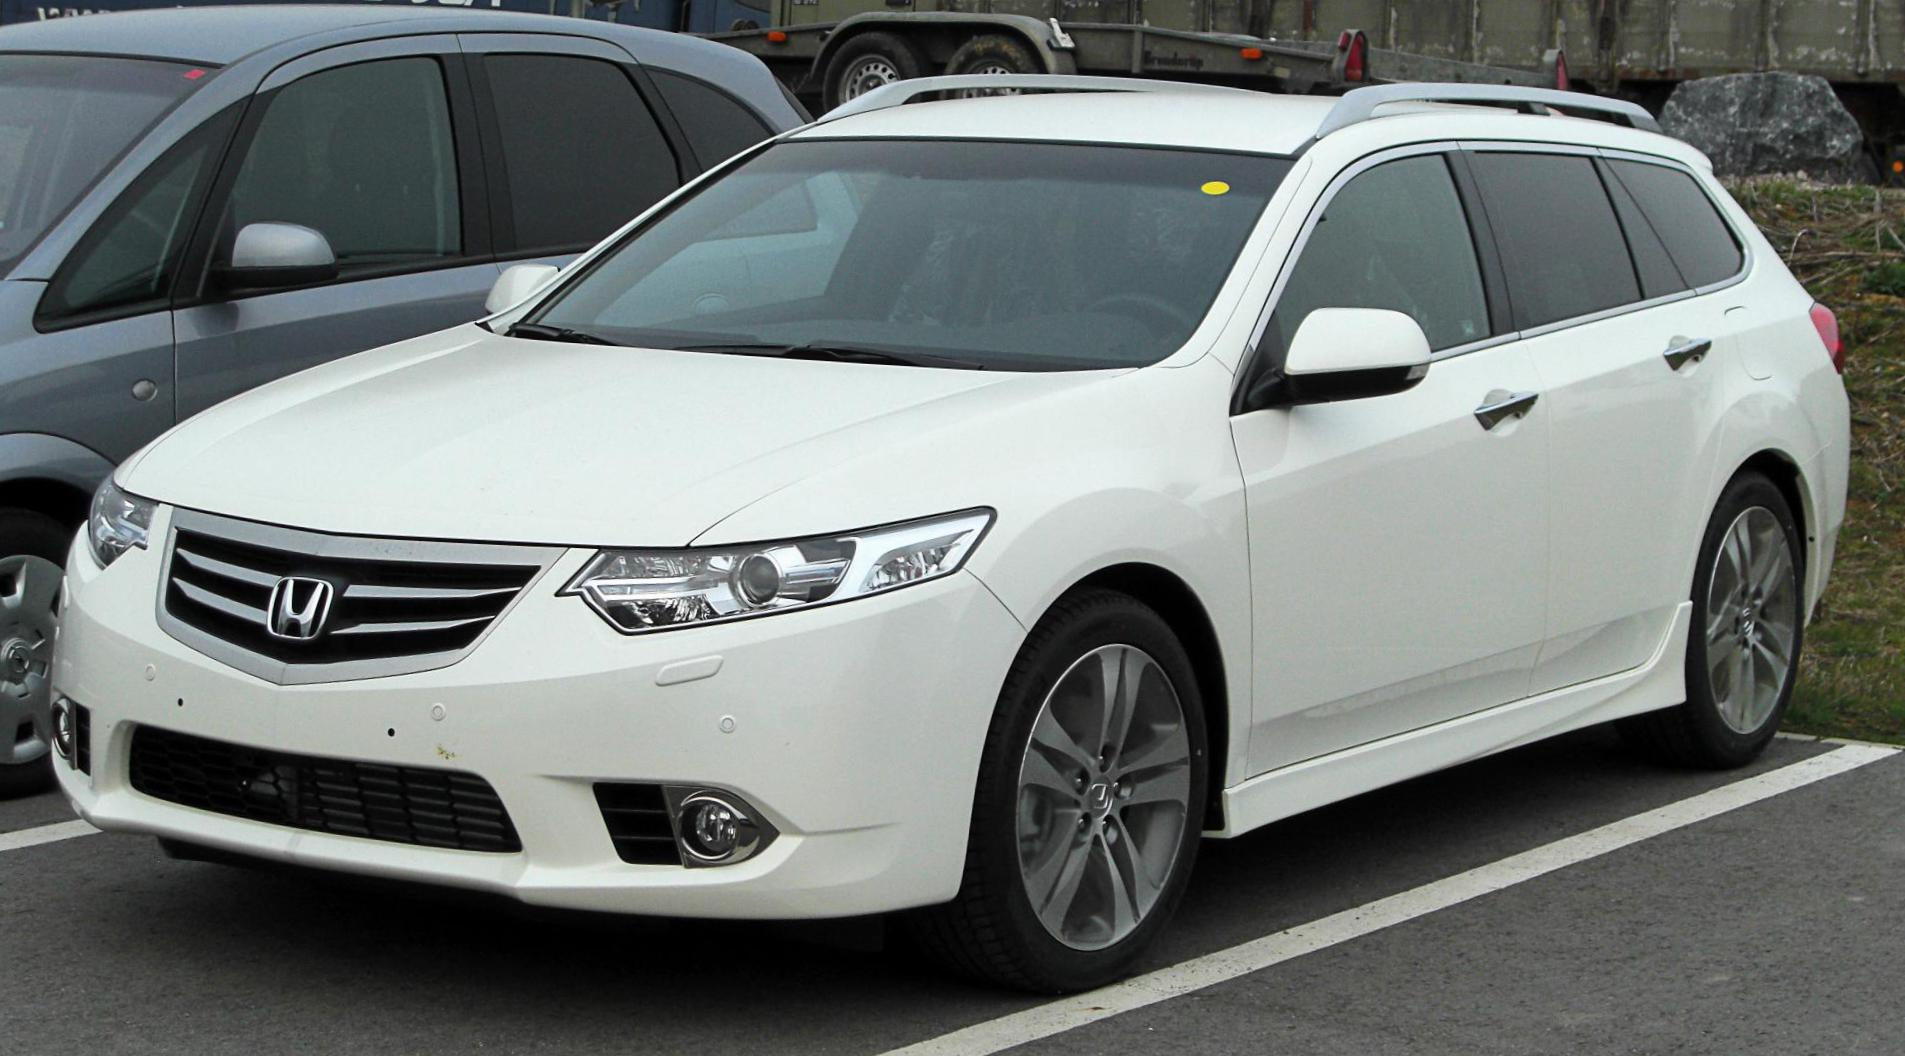 Honda Accord Tourer model 2013